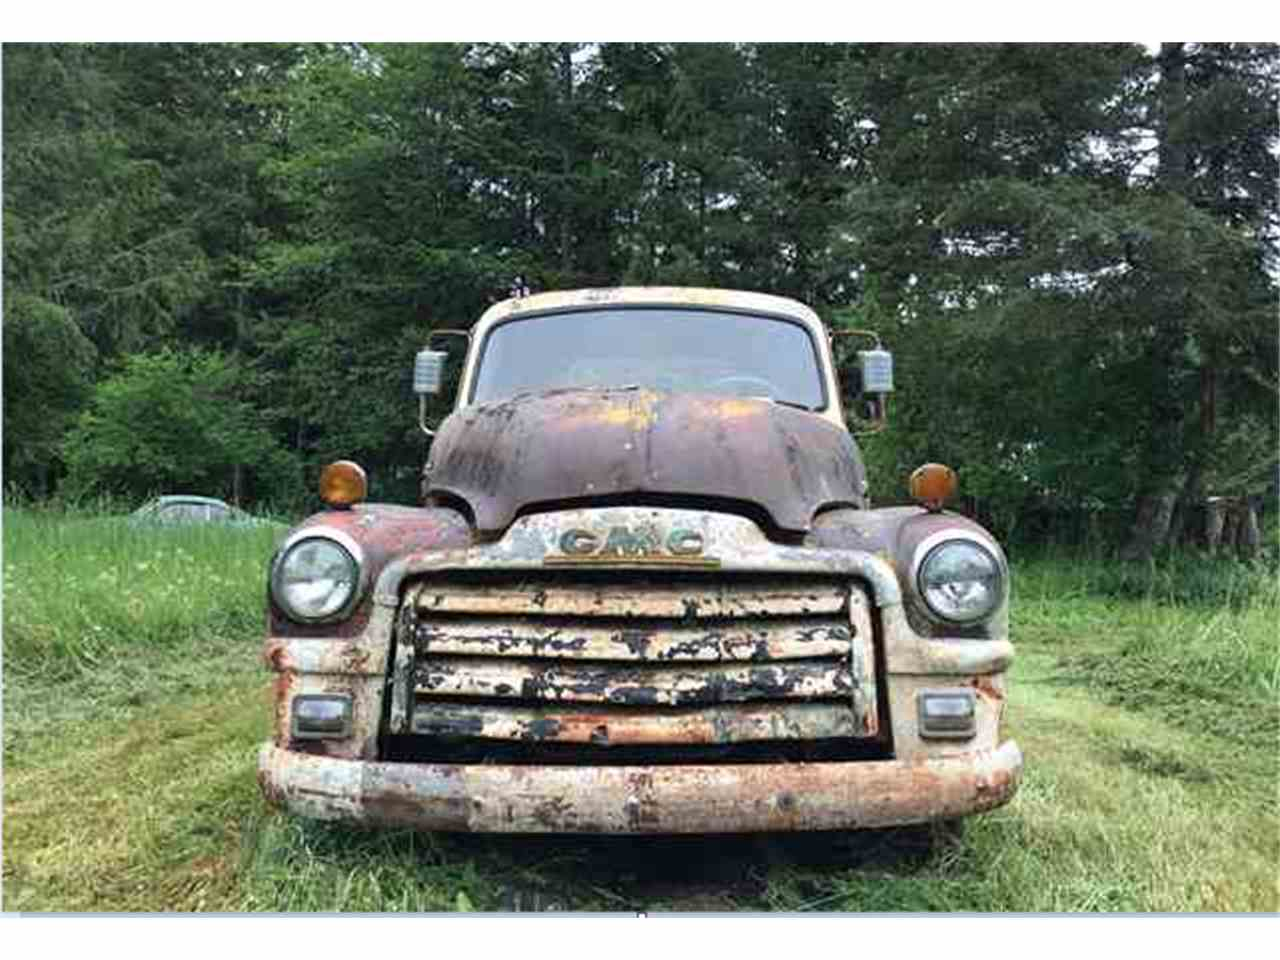 1954 gmc truck 968187 - Rusty Old Cars For Sale